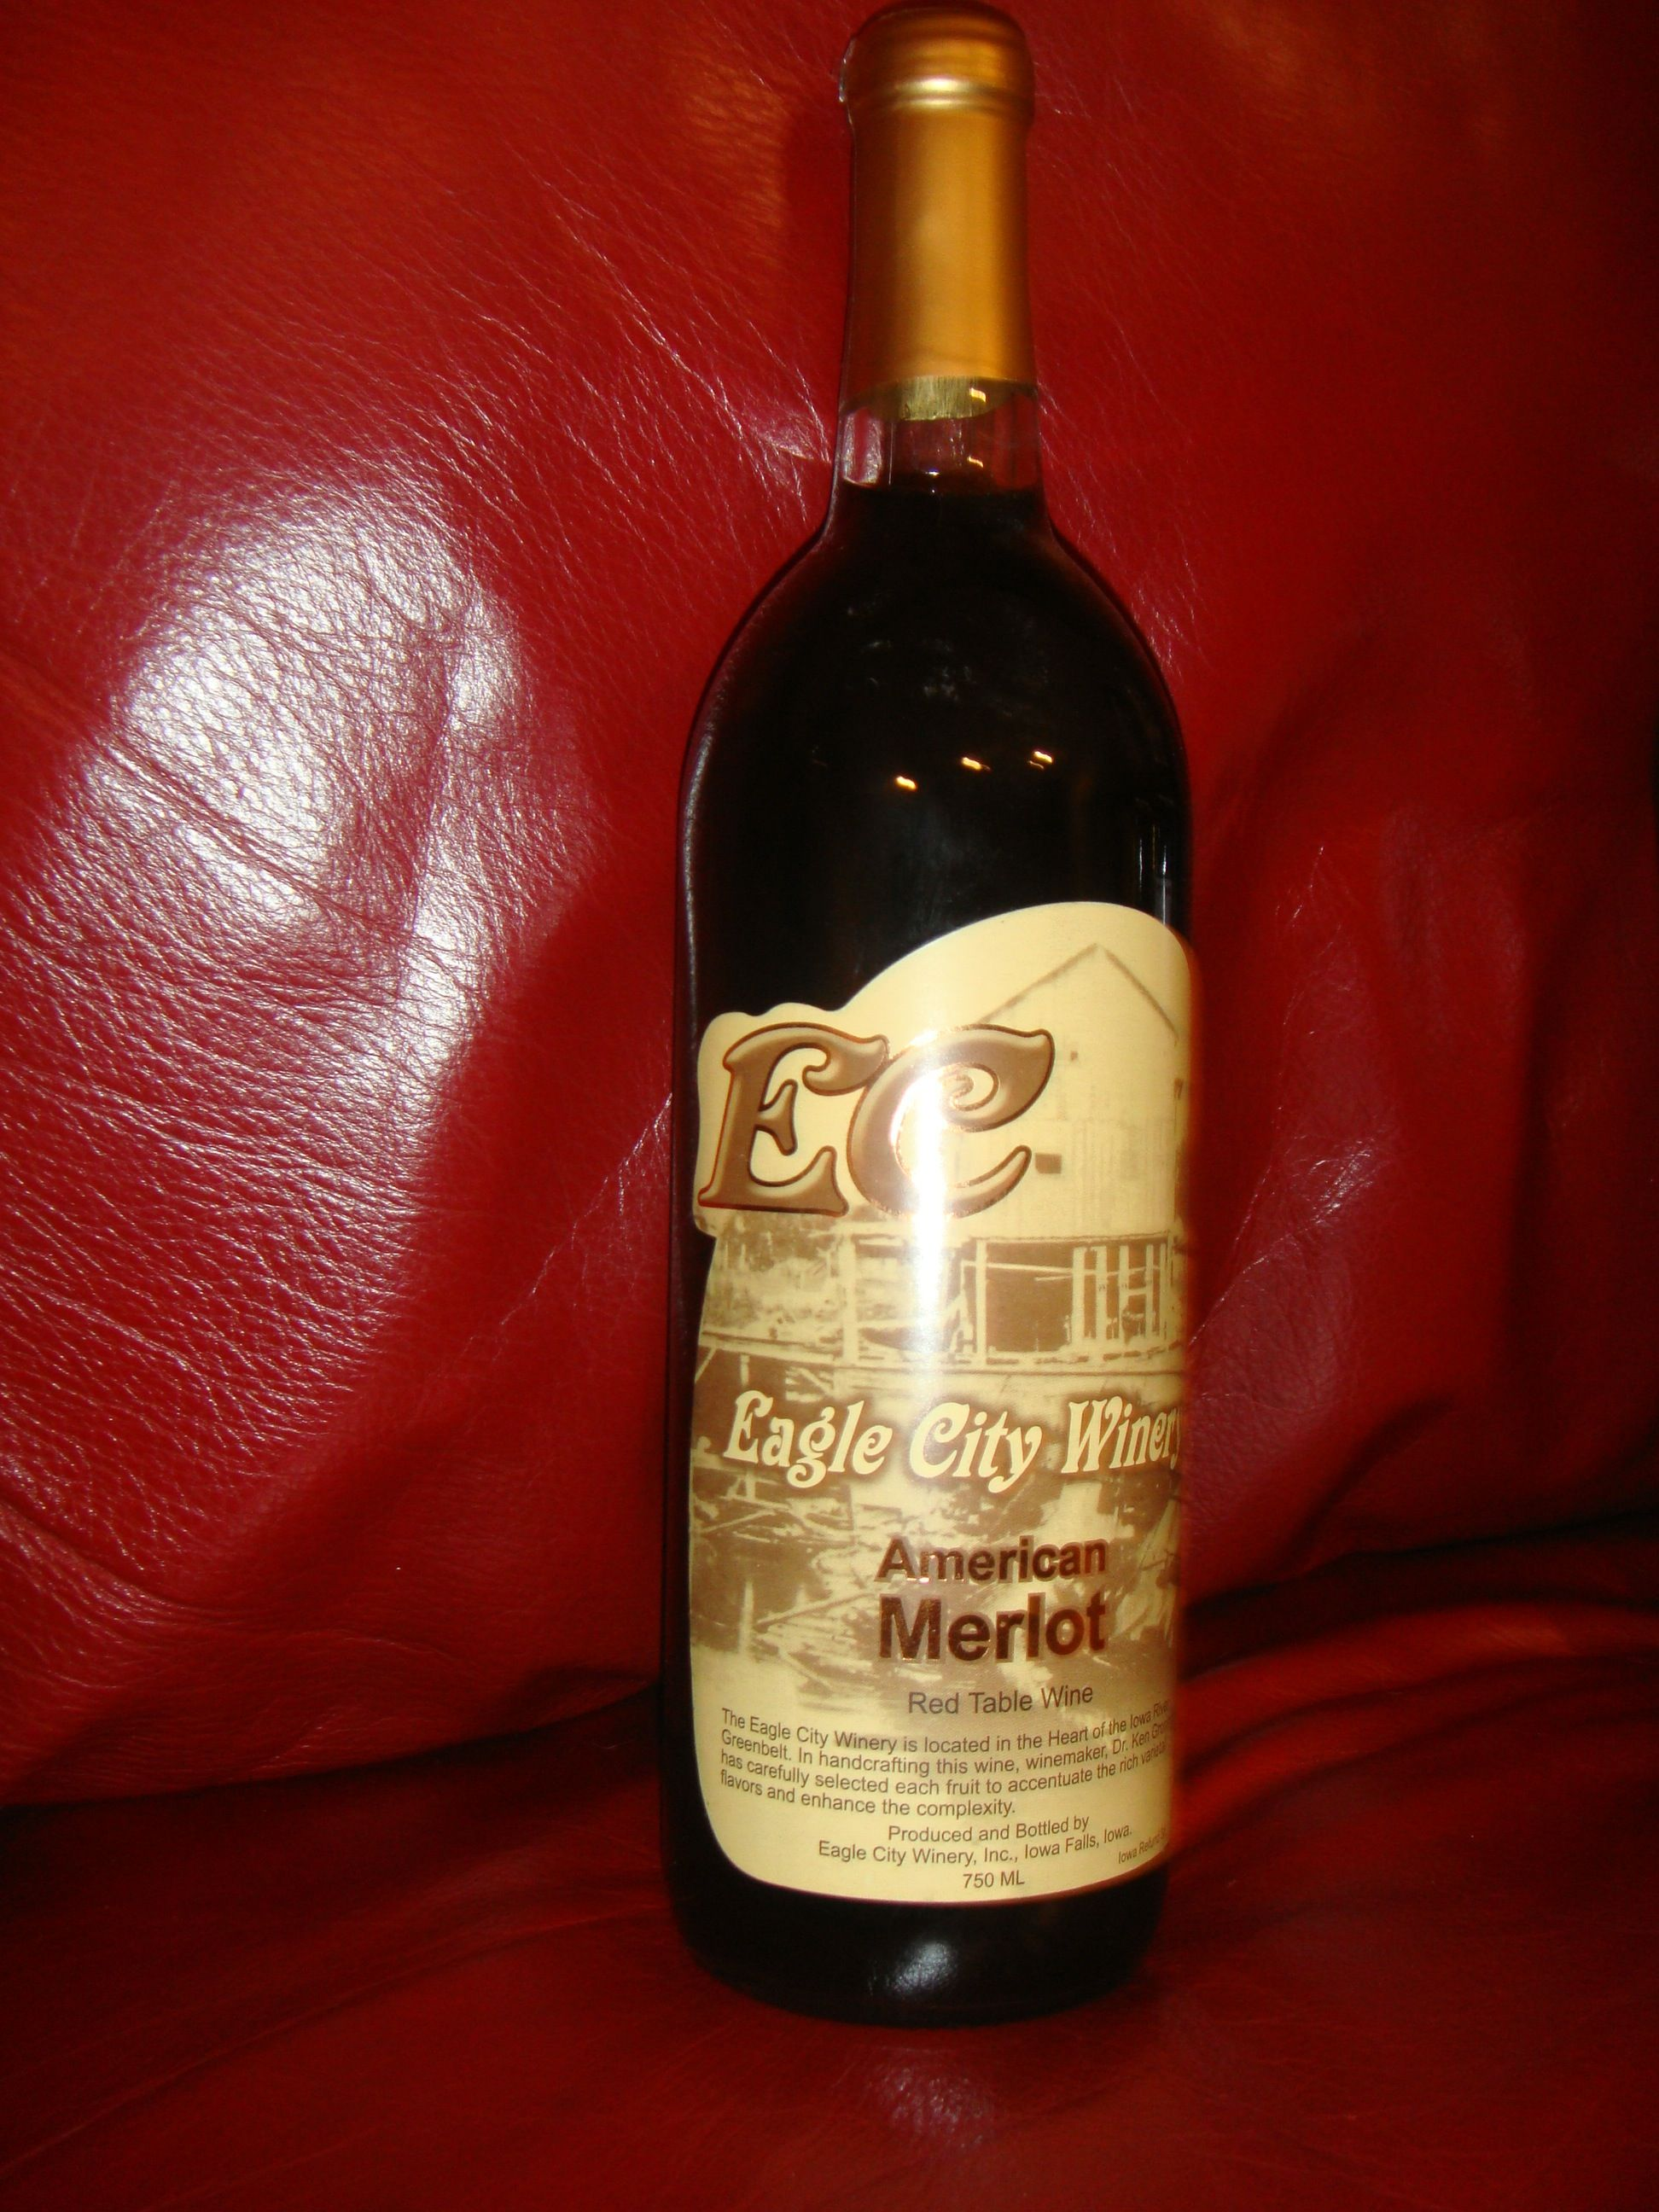 American Merlot Red Table Wine By Eagle City Winery In Iowa Falls Ia Iowa Falls City Winery Wine